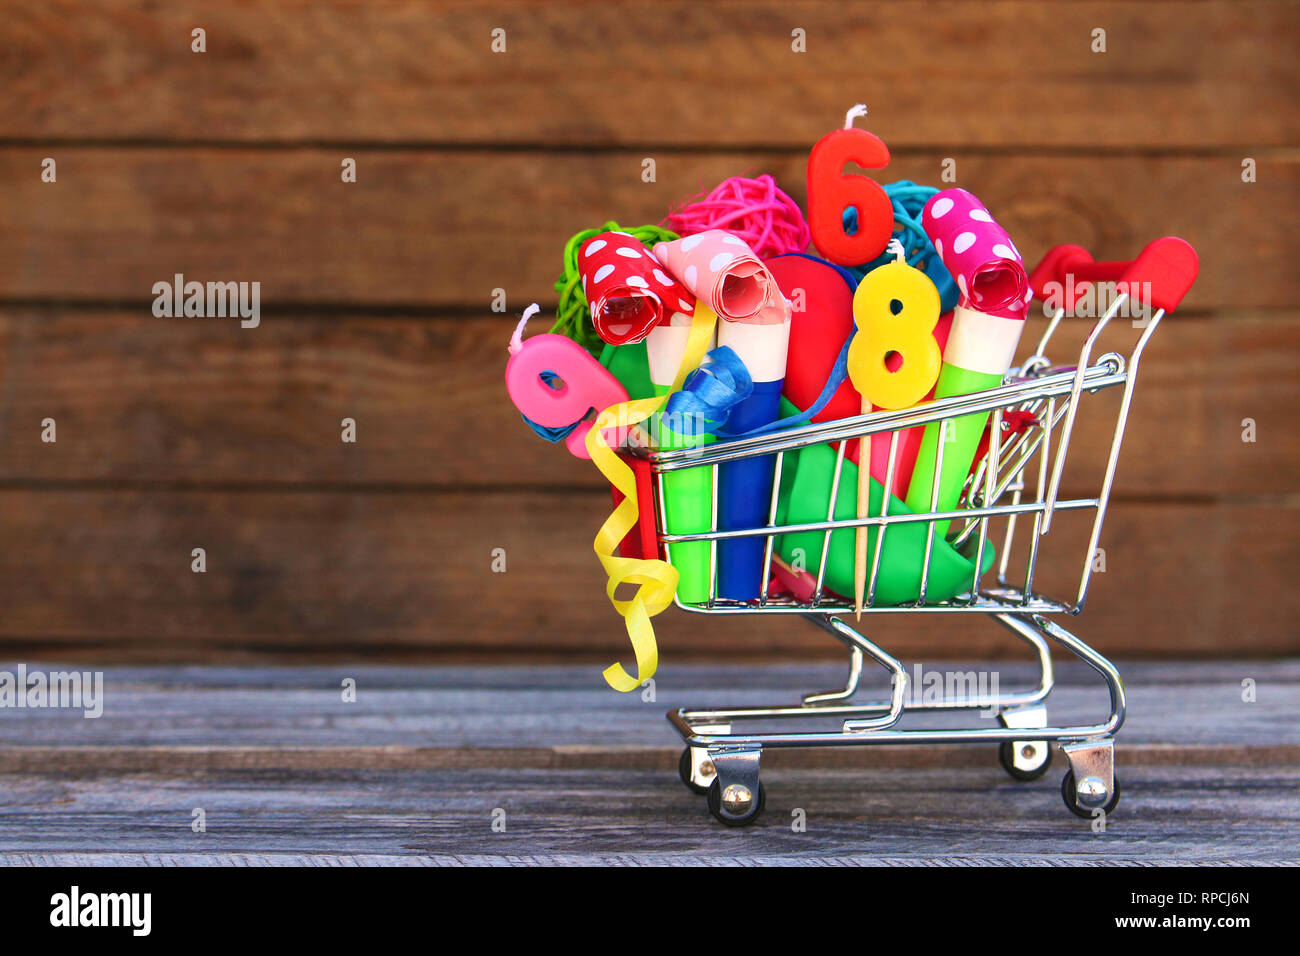 Shopping cart with items for birthday celebration on wooden background. Stock Photo